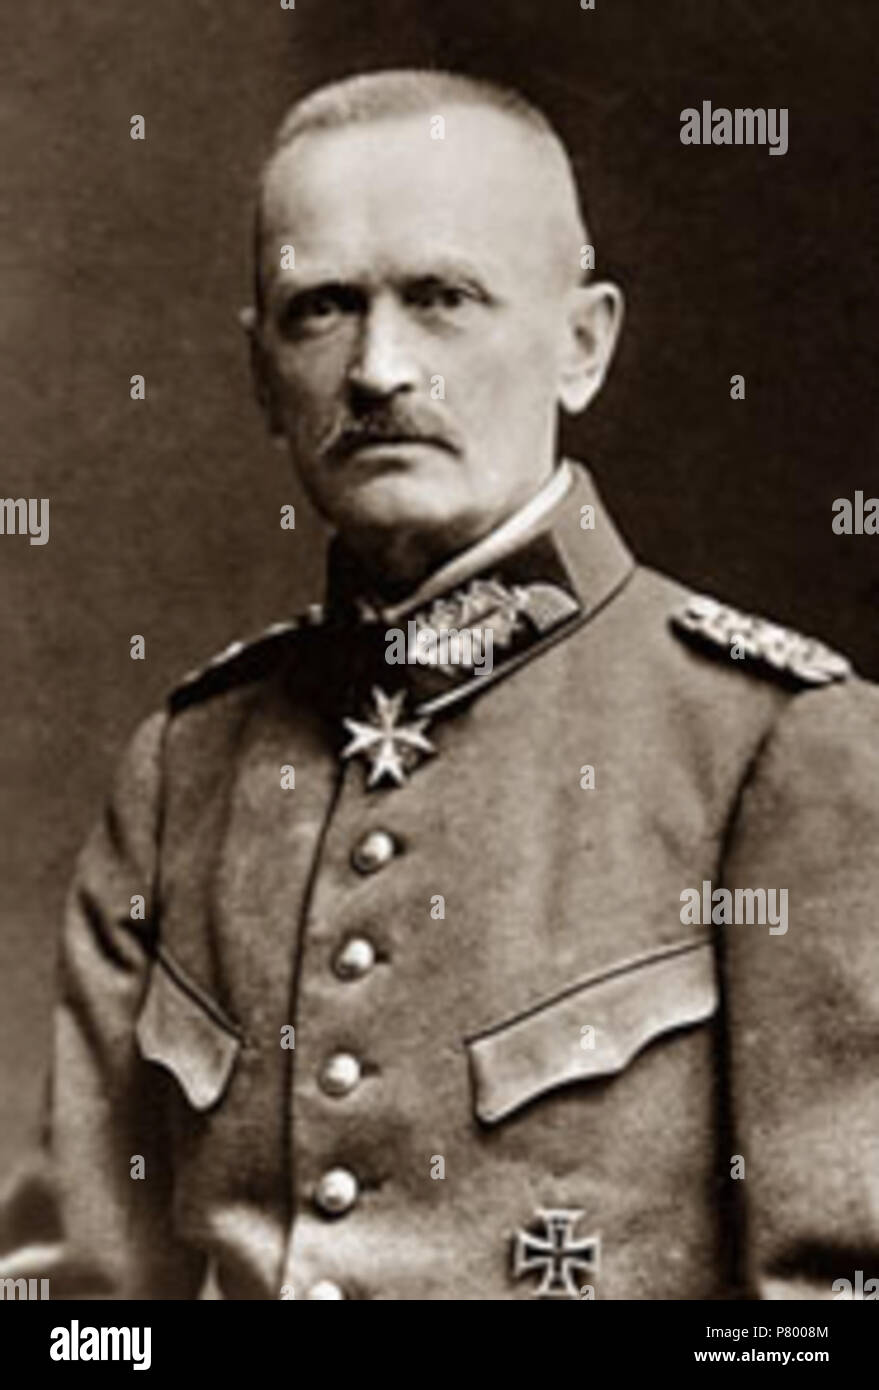 Imperial German Army Stock Photos & Imperial German Army Stock